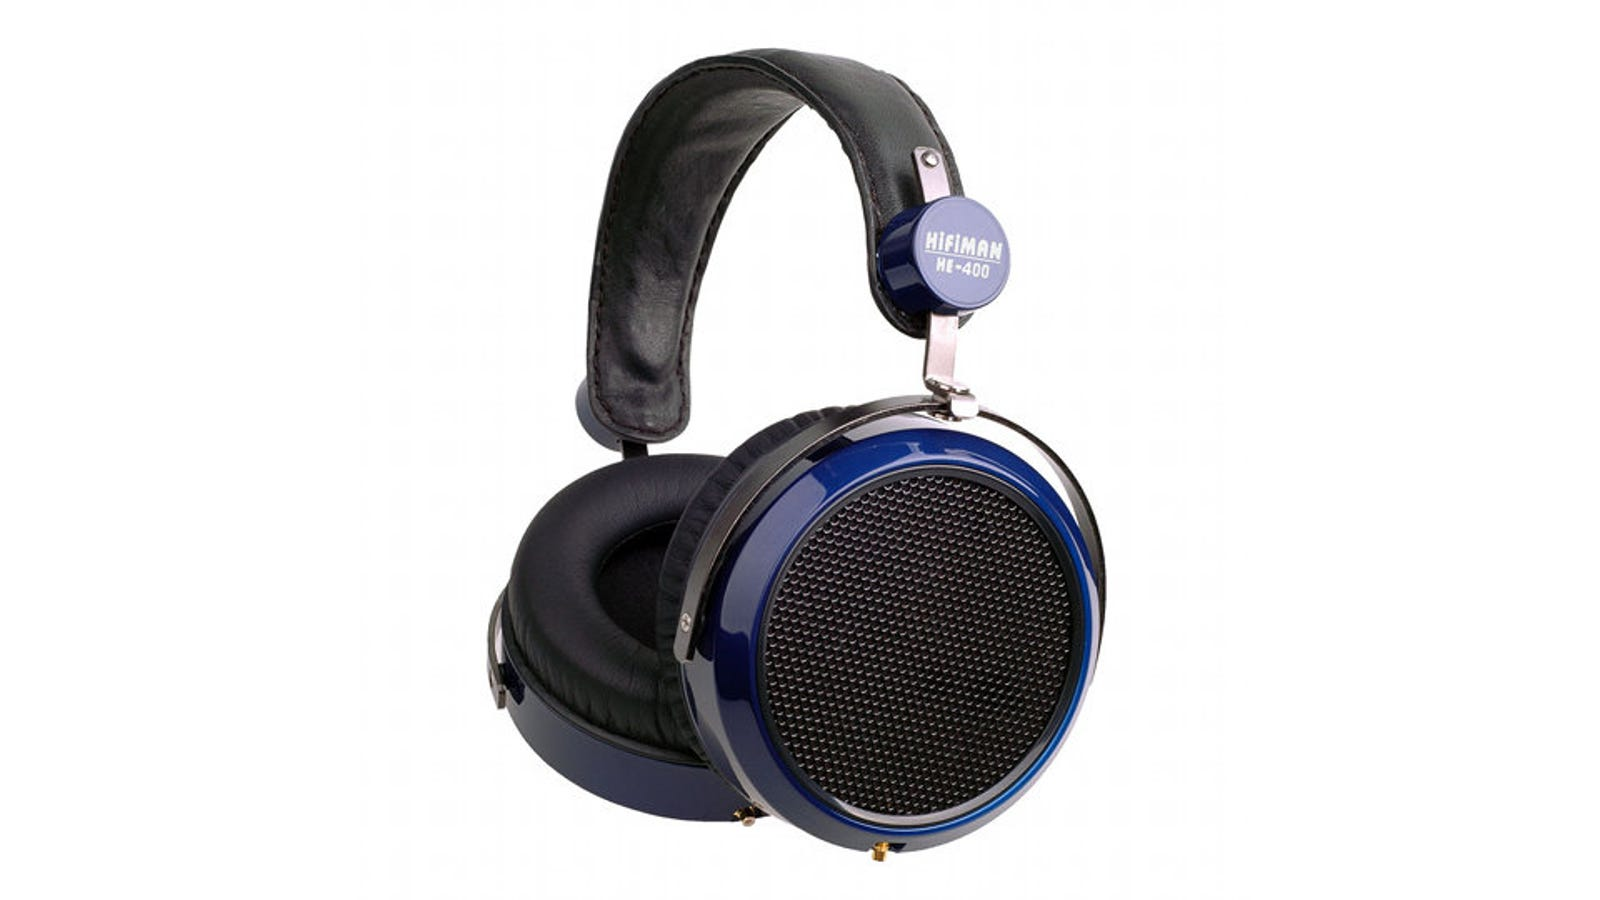 jbl headphones wireless e55bt